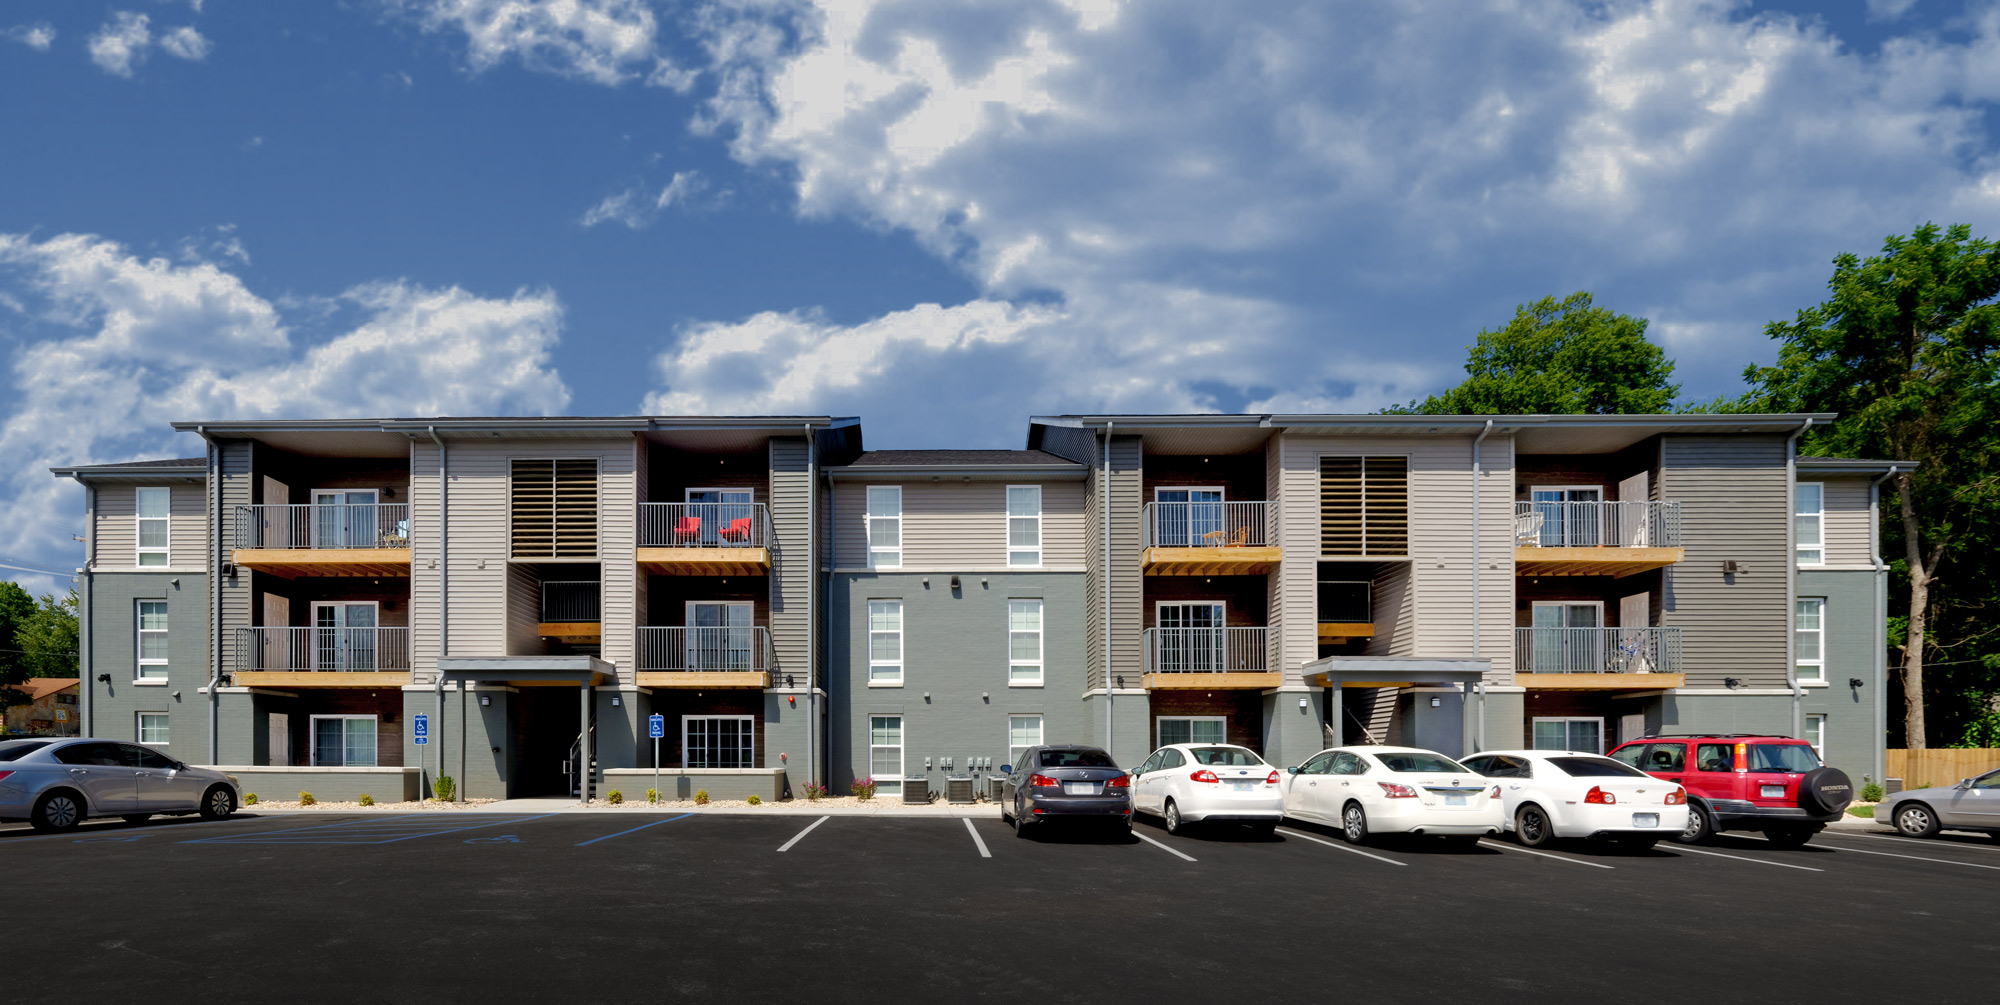 Modern Apartment Community in Springfield, Missouri